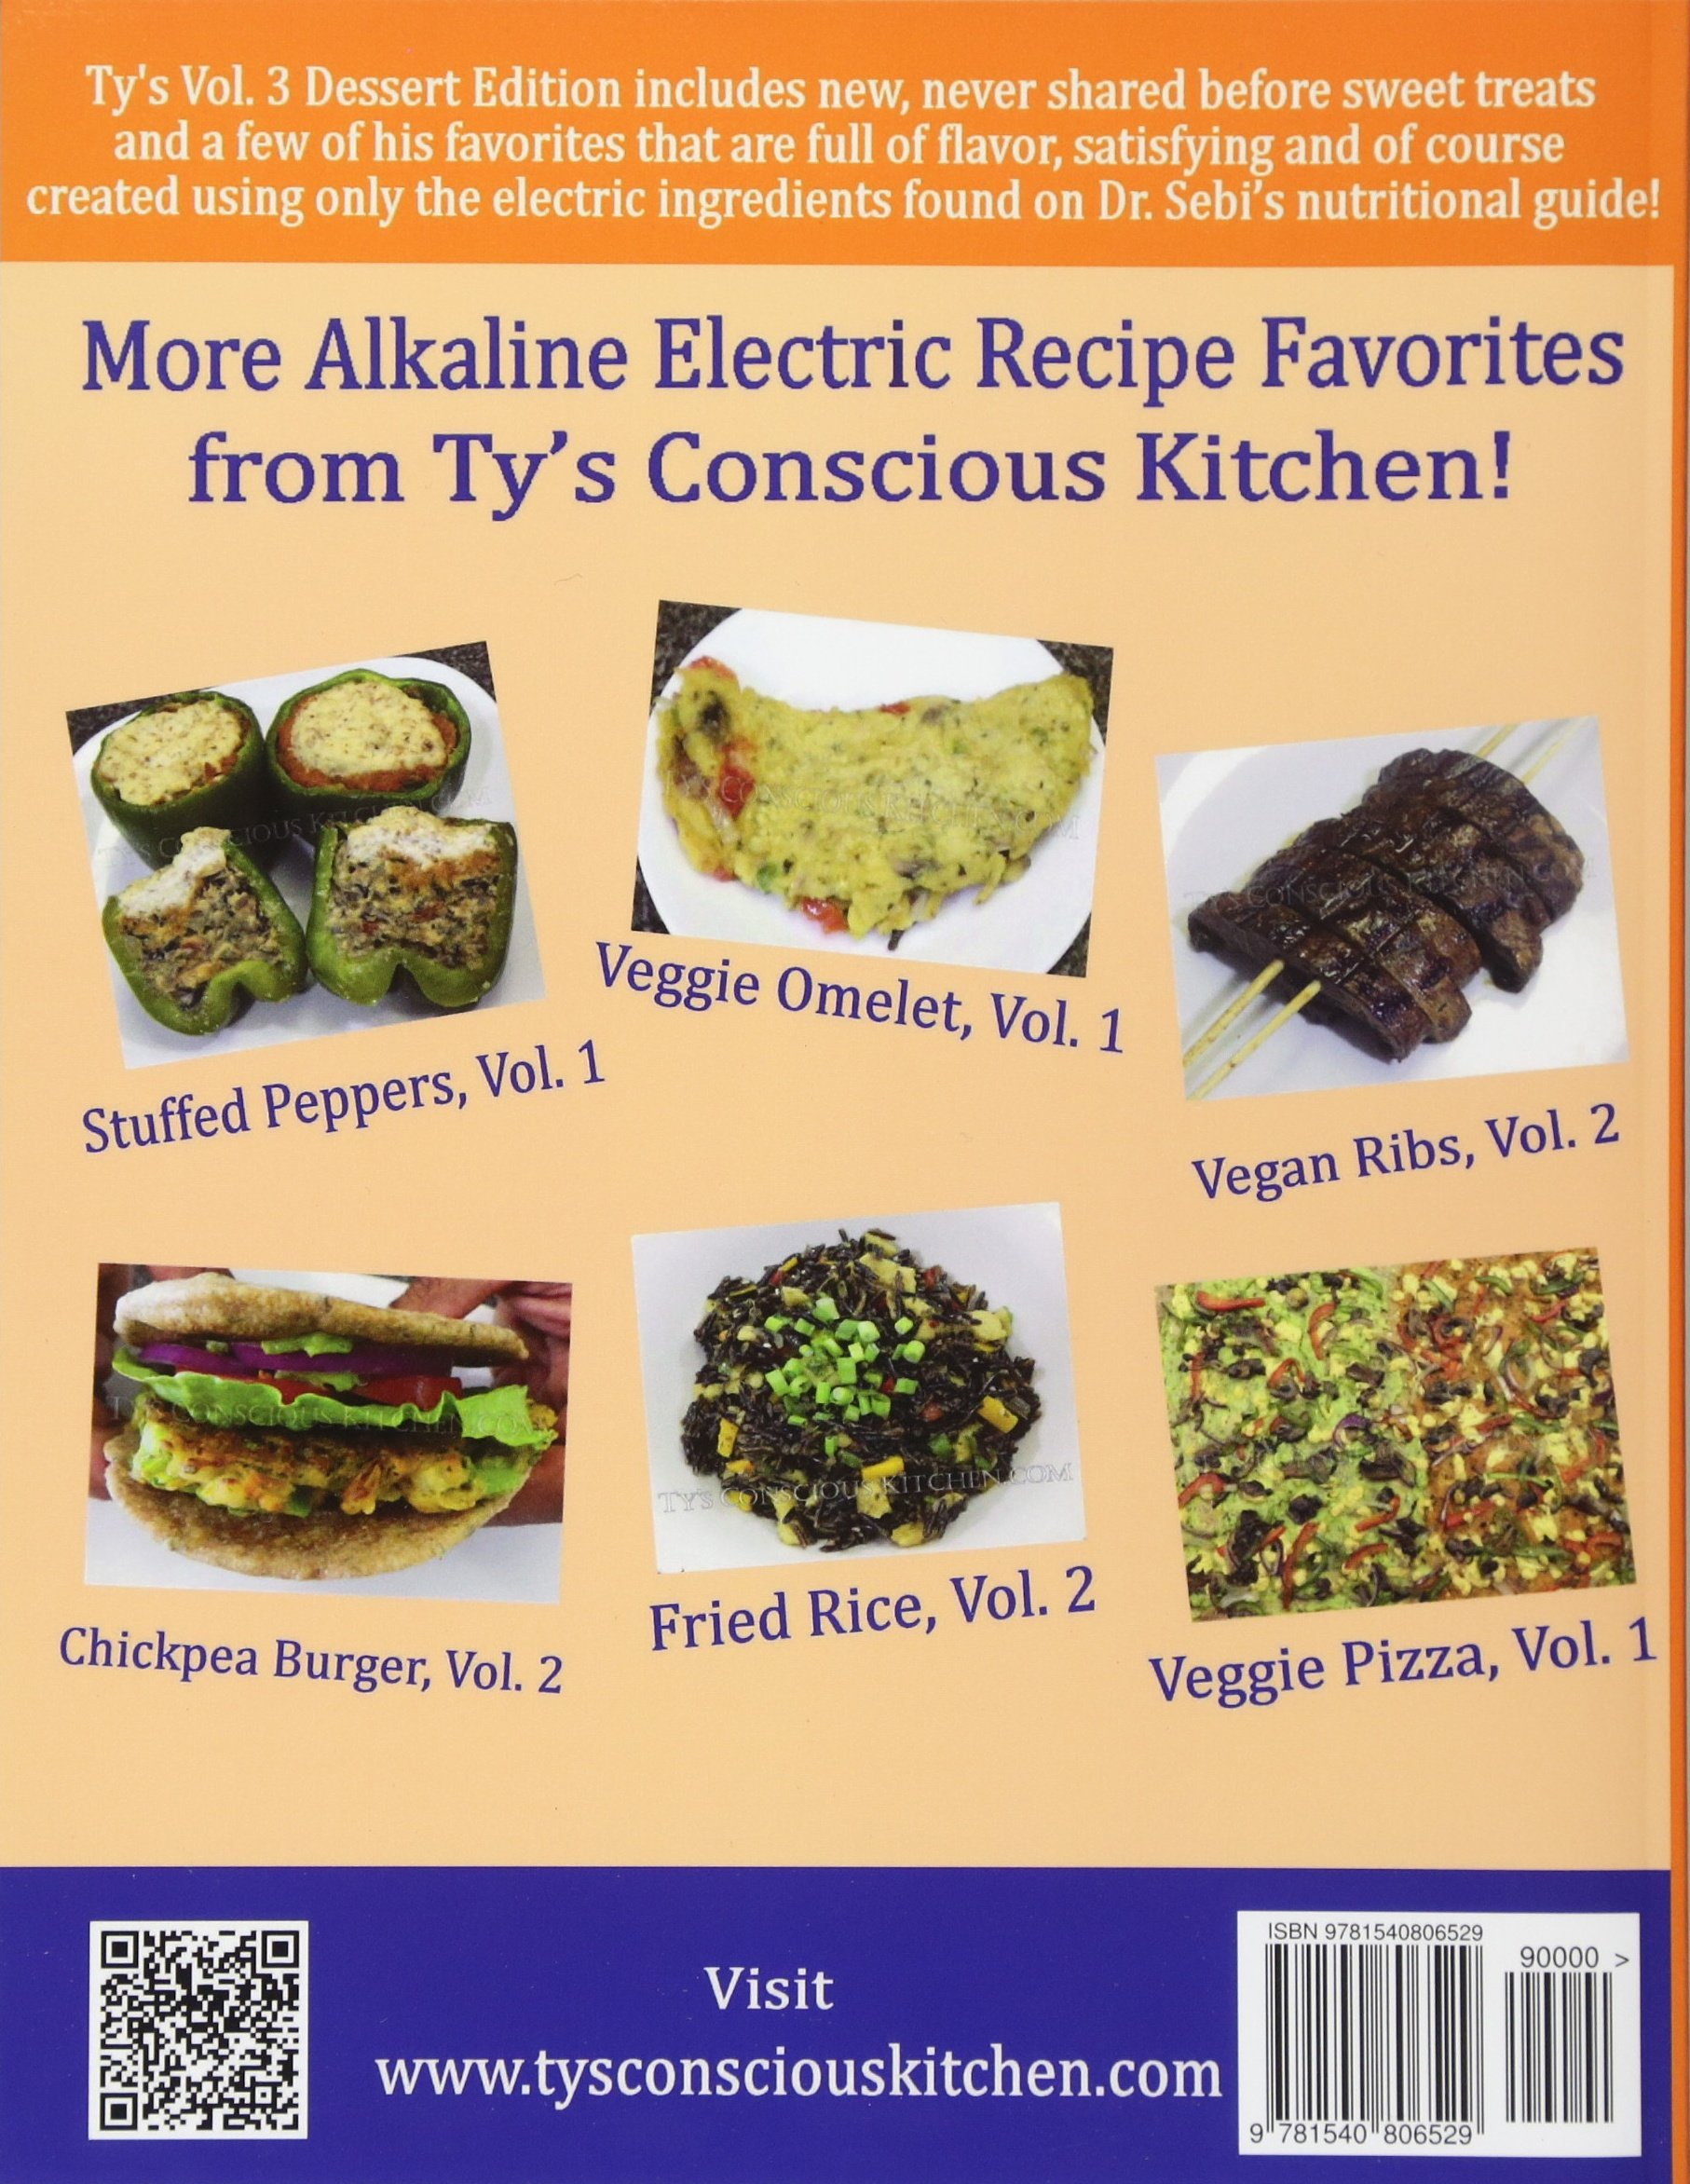 Alkaline Electric Recipes From Ty's Conscious Kitchen: The